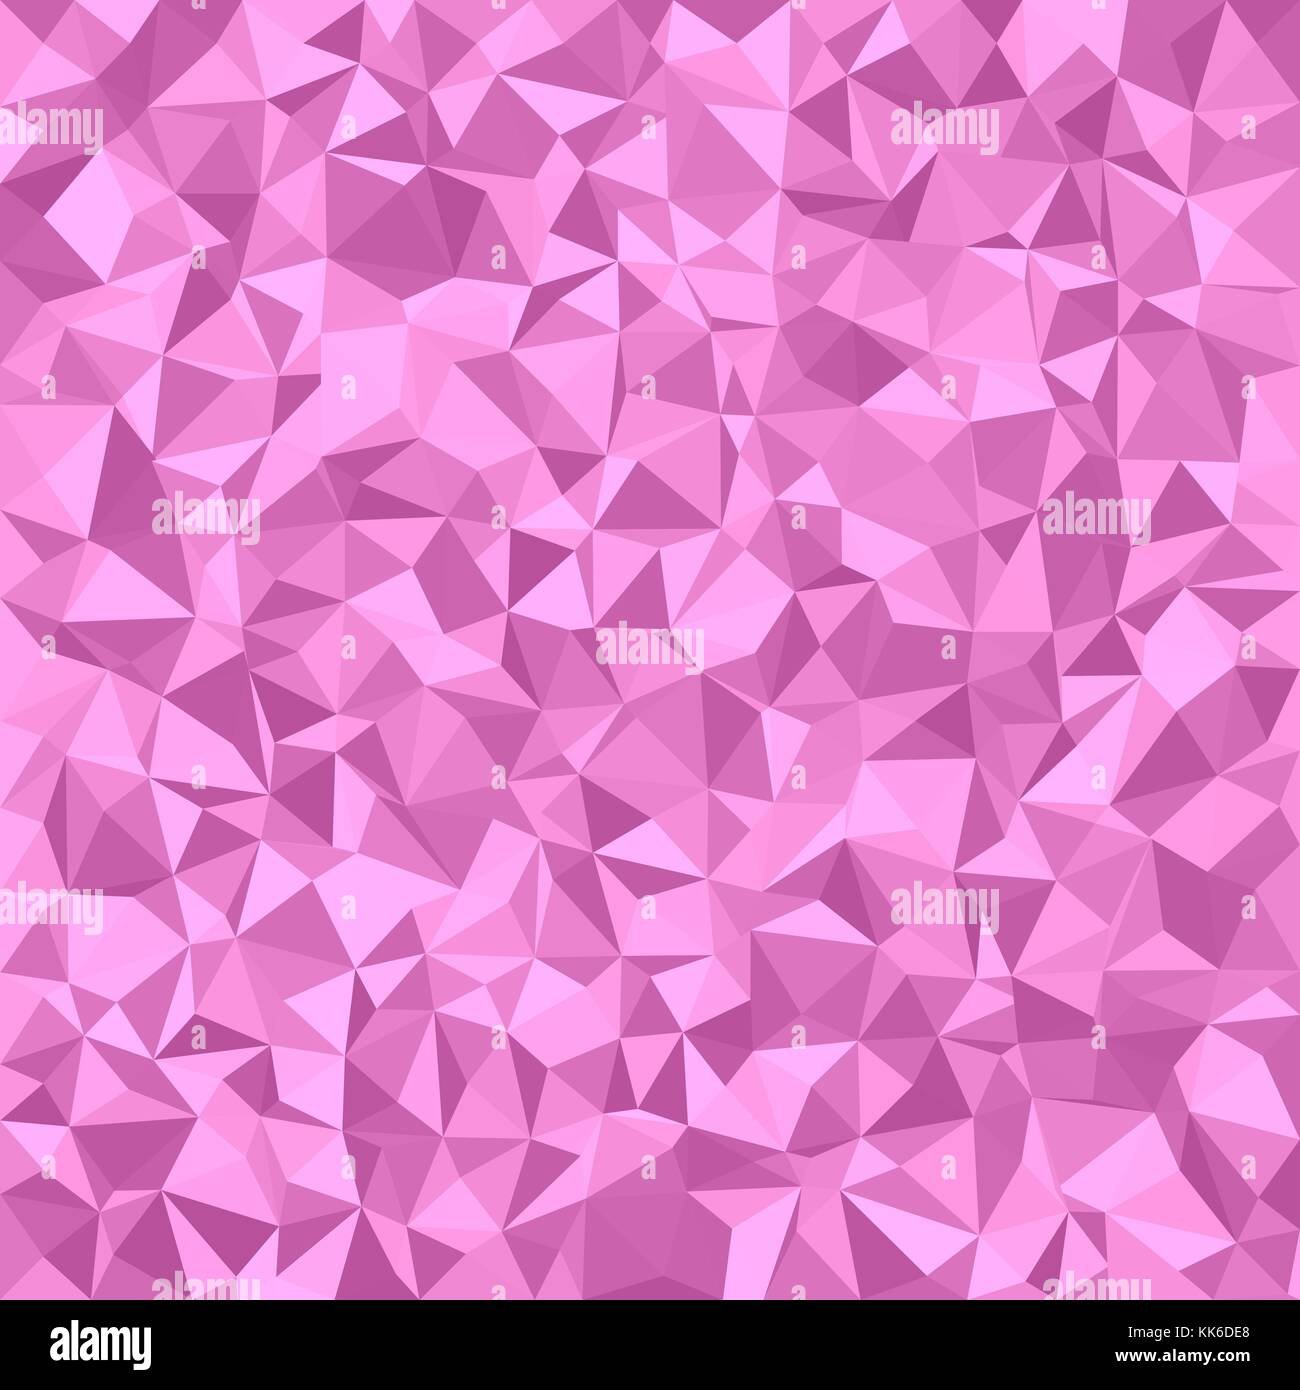 triangle tiled pattern background polygonal vector design from